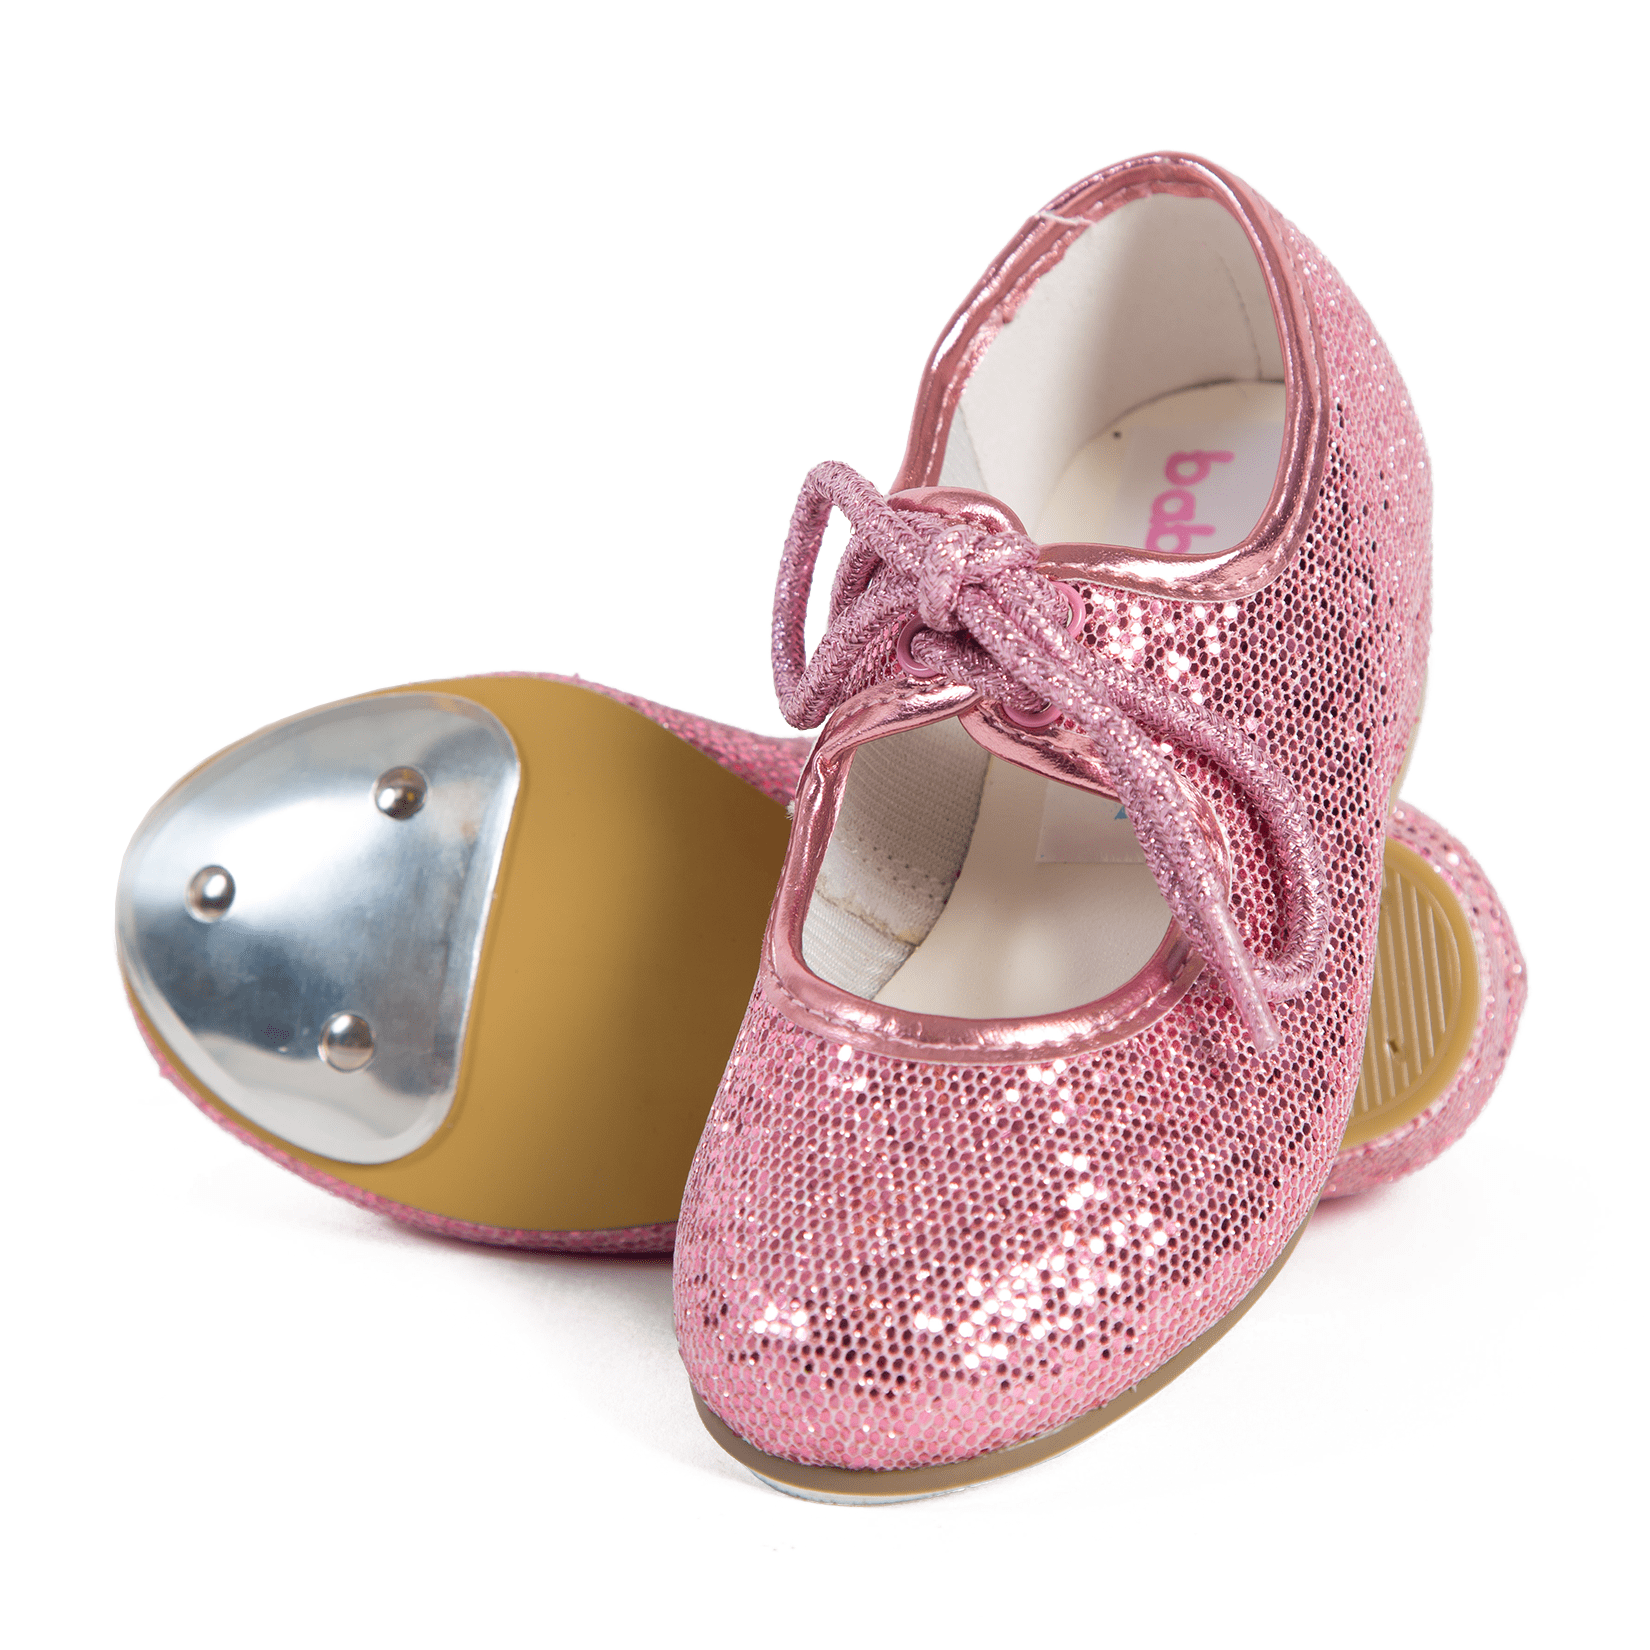 Baby Tap Shoes Newest and Cutest Baby Clothing Collection by Due